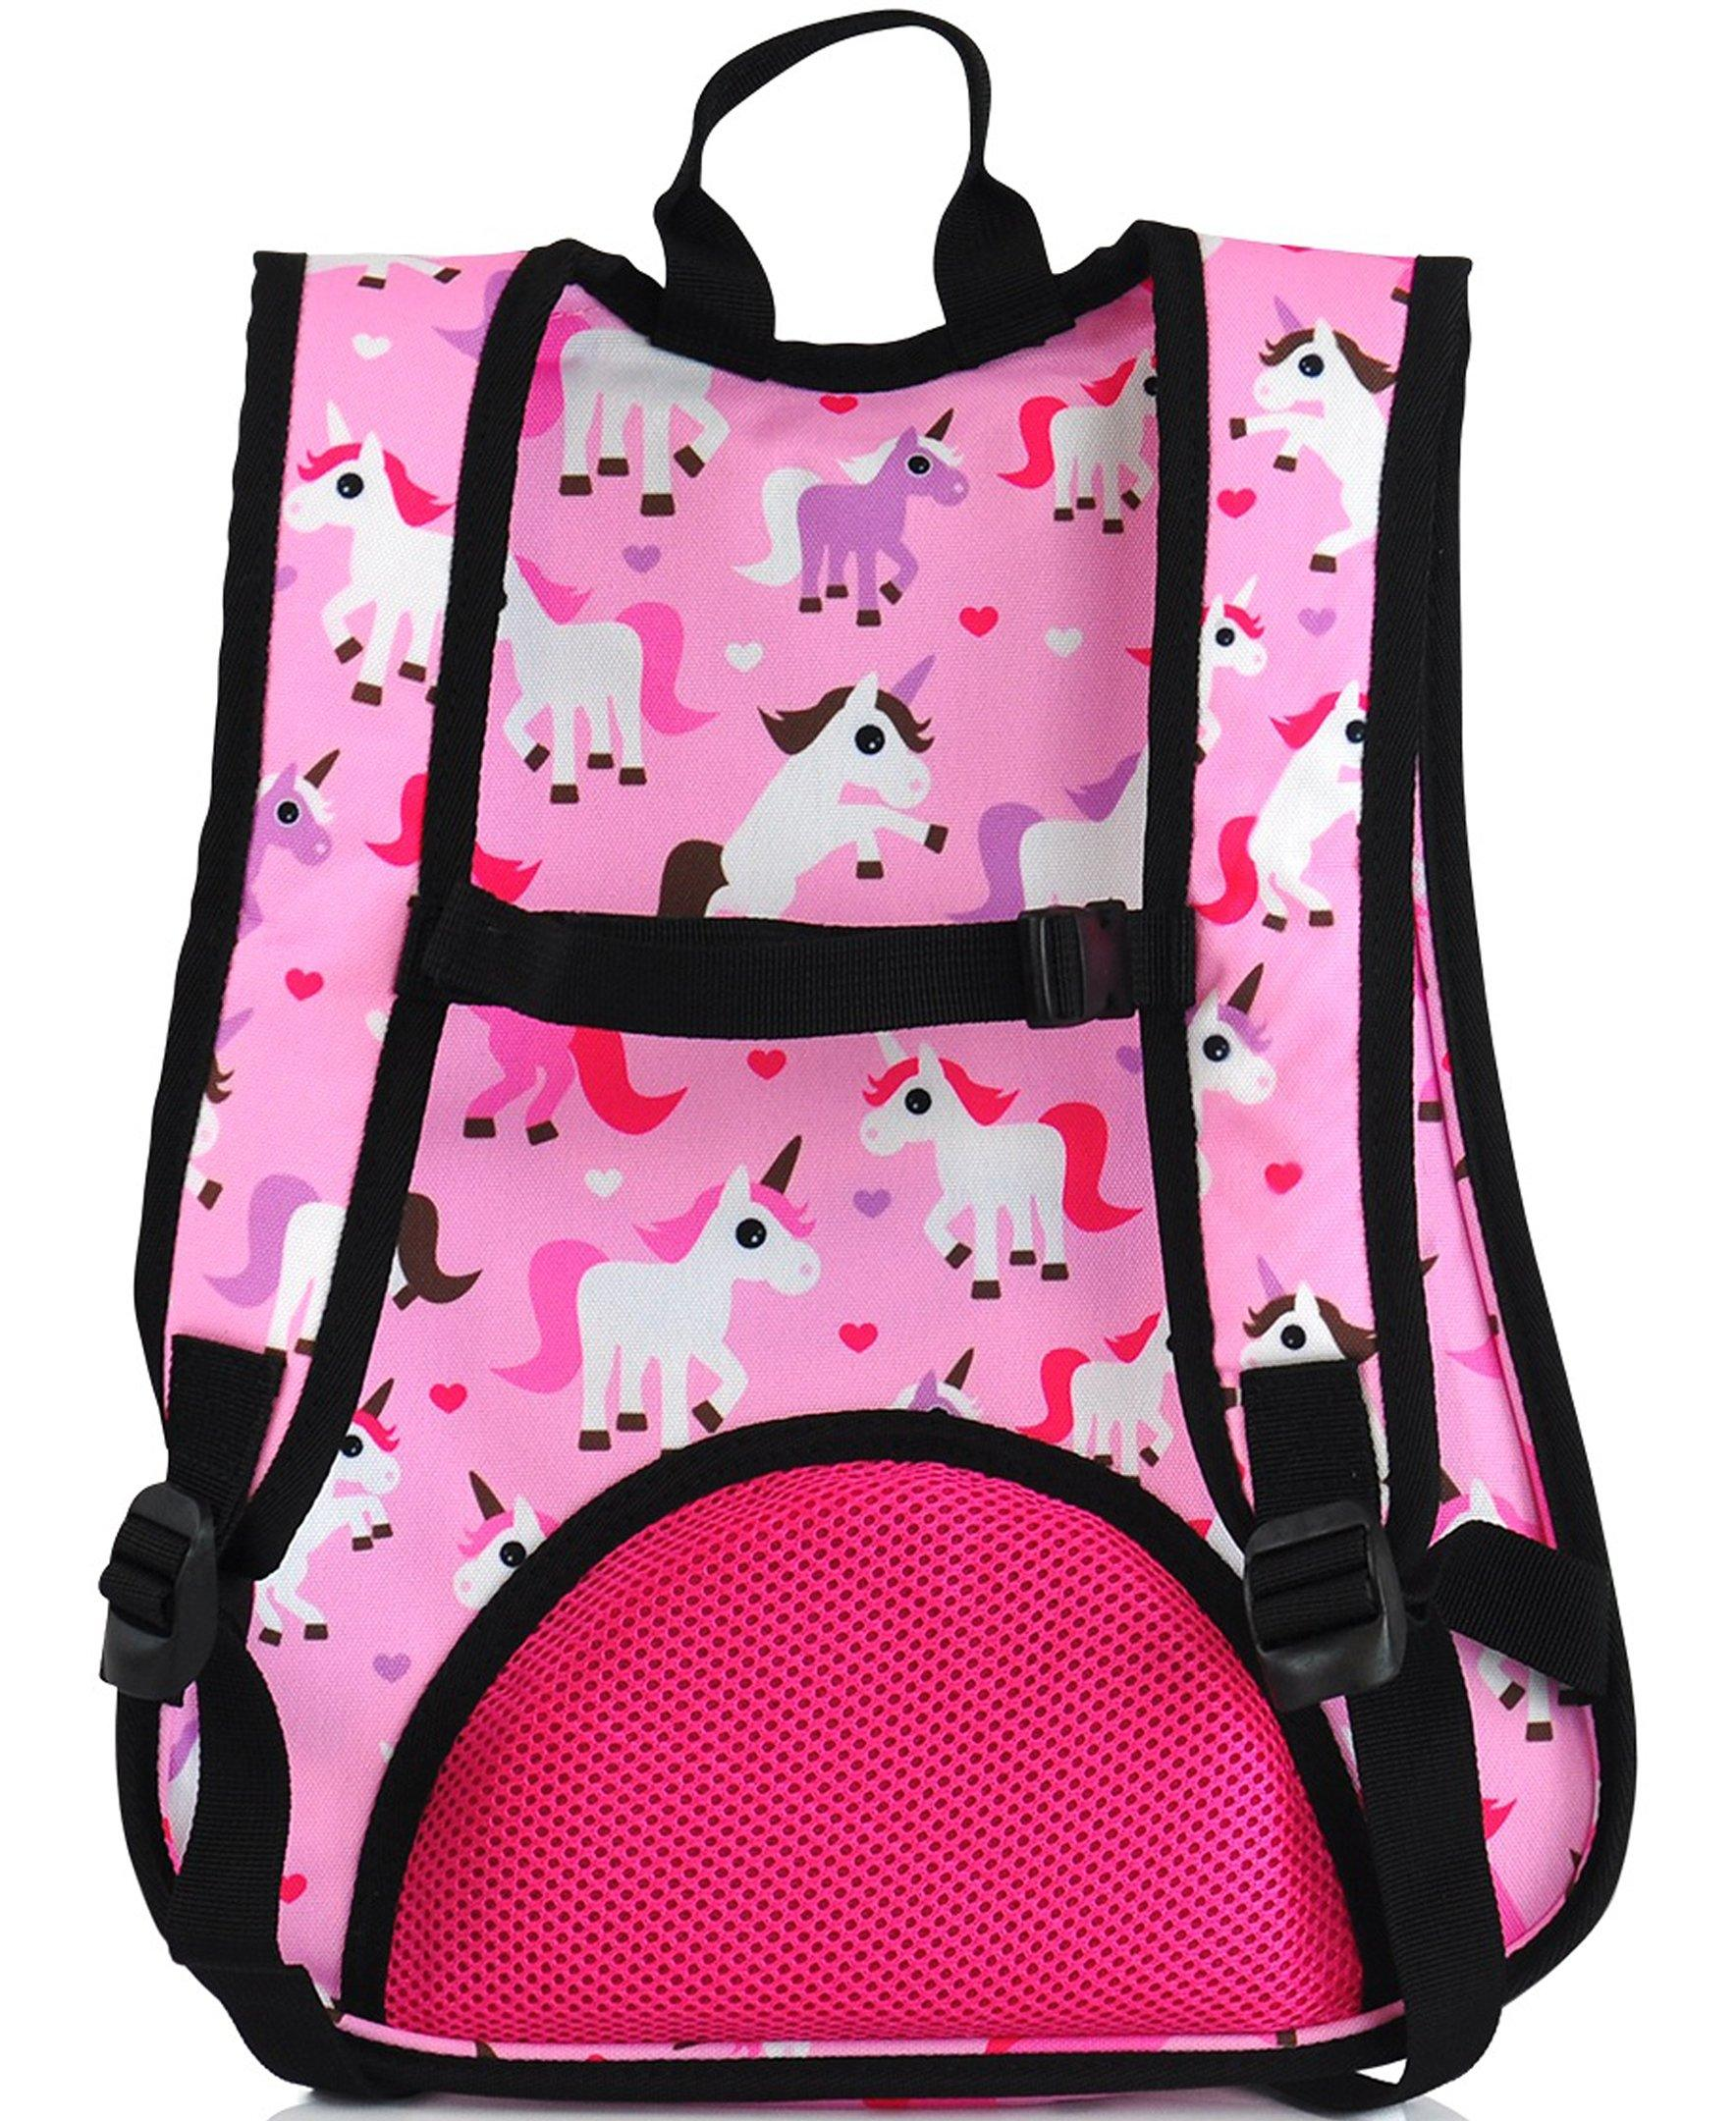 Obersee Kids Pre-School All-In-One Backpack With Cooler - Unicorn